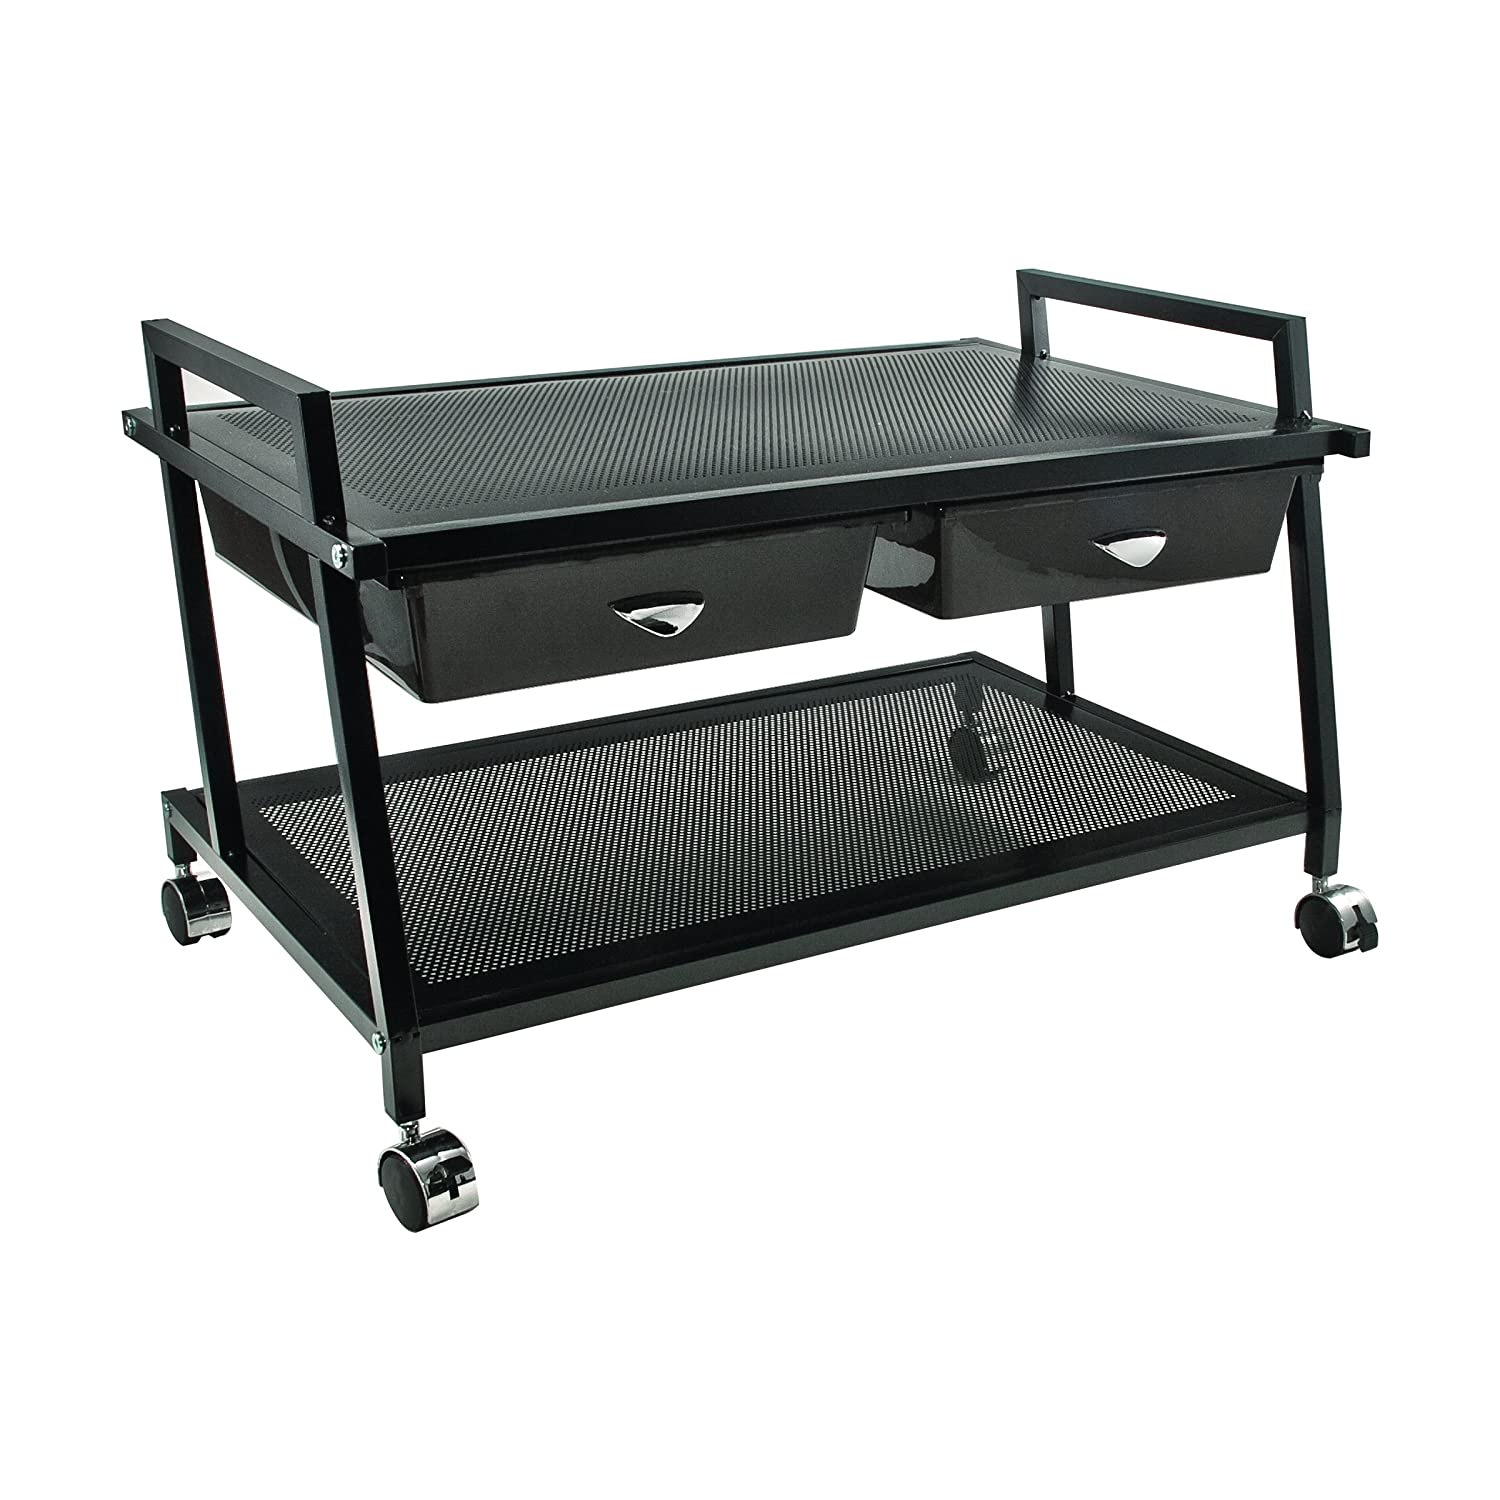 Vertiflex Mobile Underdesk Machine Stand with Supply Drawers, 25x15x15-Inch, Black, VF95530